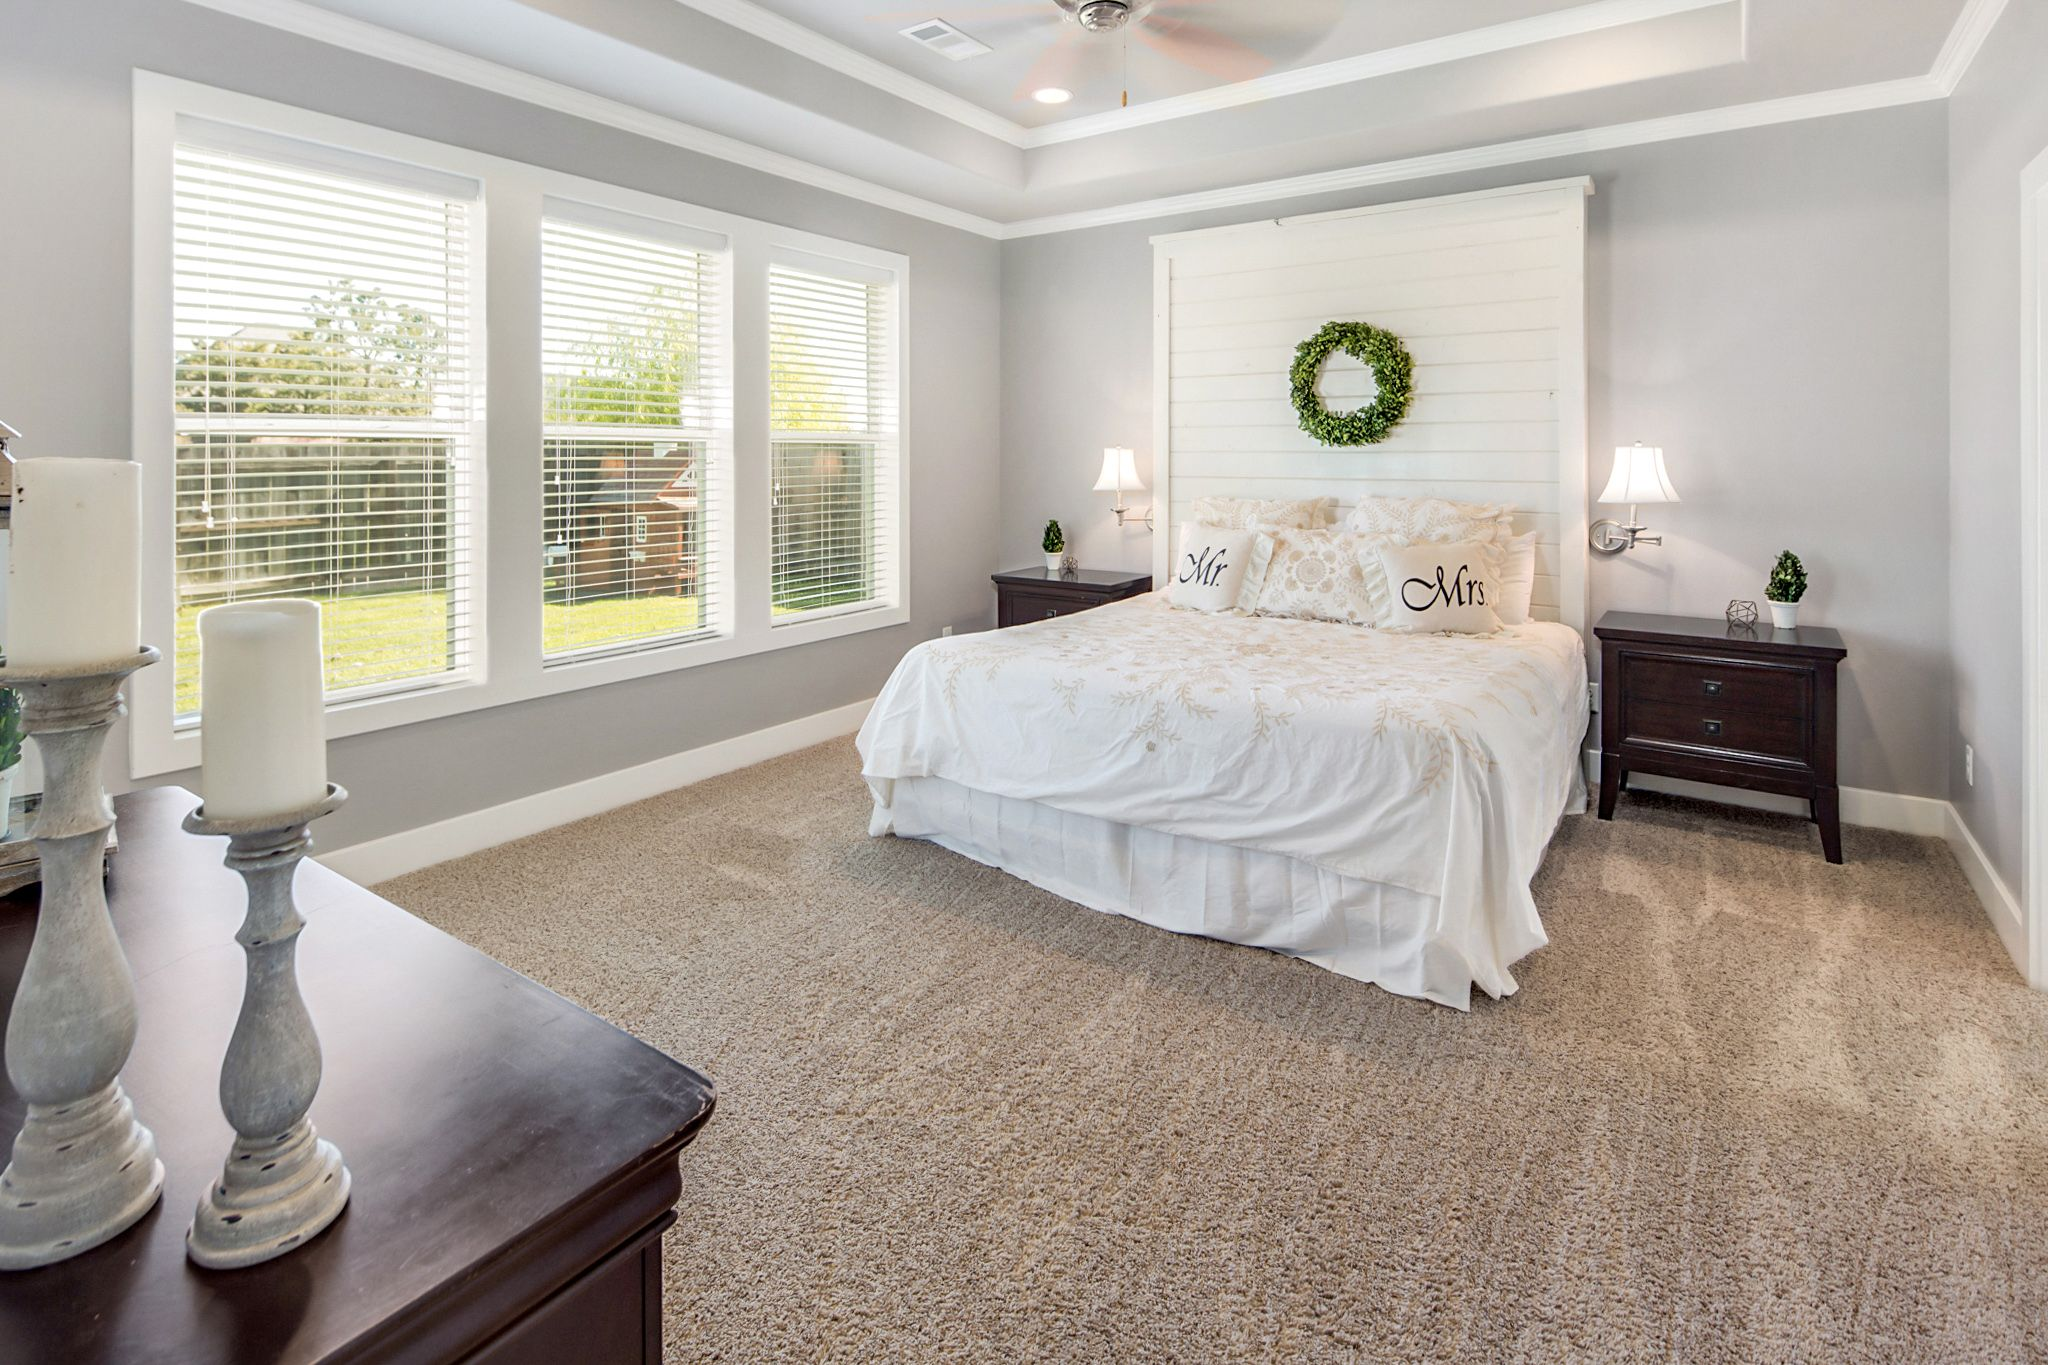 White Master Bedroom White Shiplap Headboard, Grey Walls, Wall Of